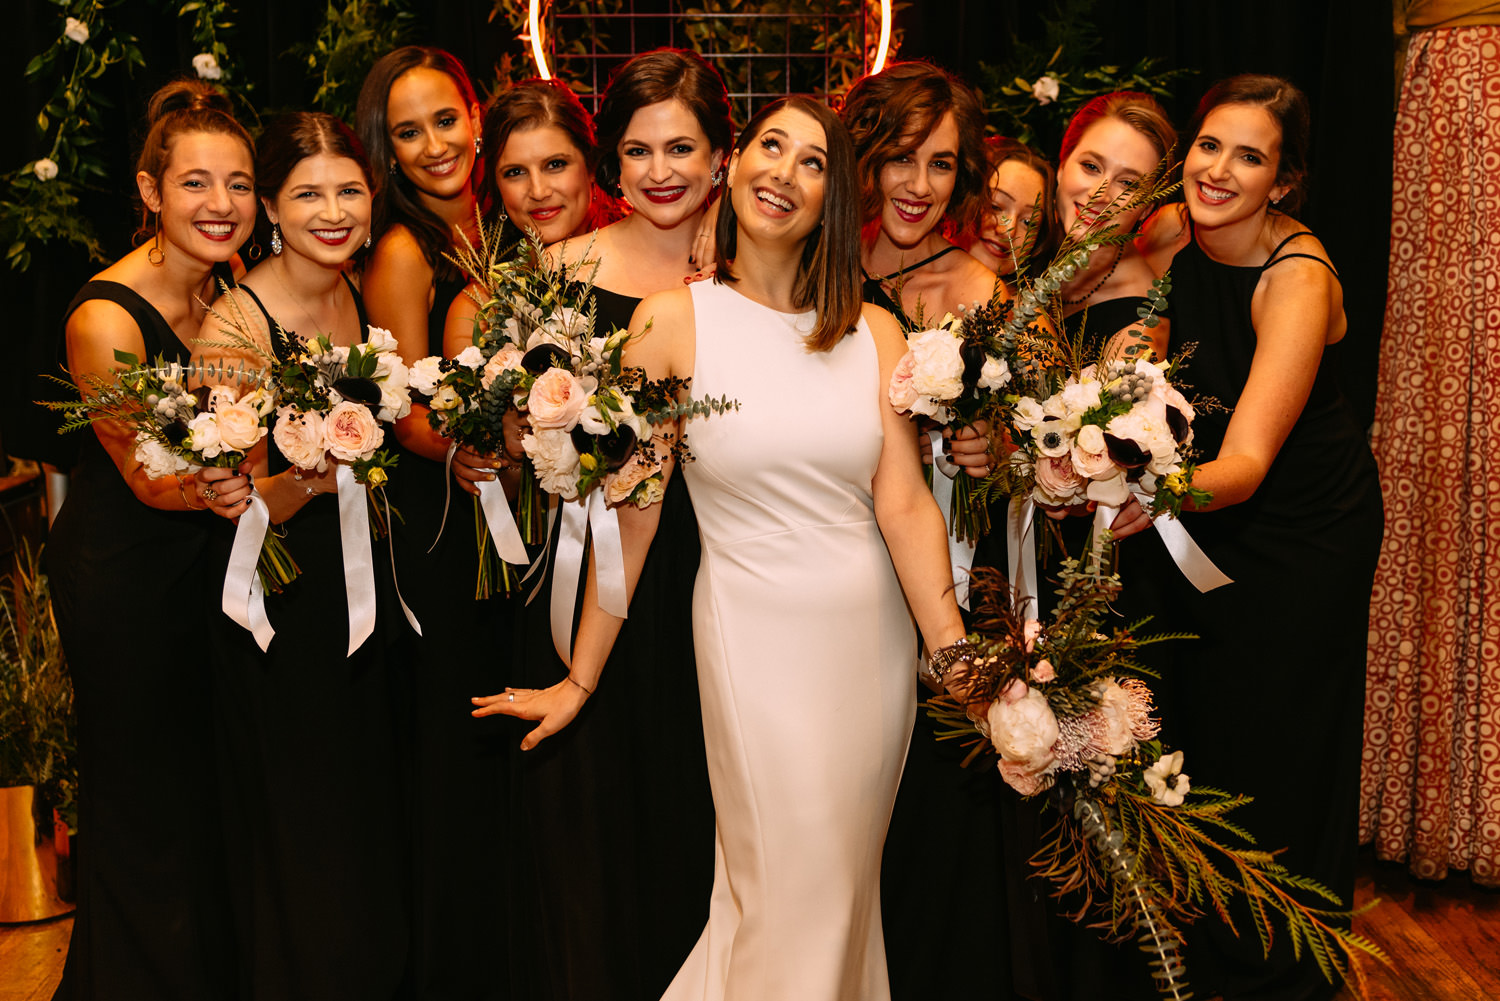 group portrait of a bride with bridesmaids